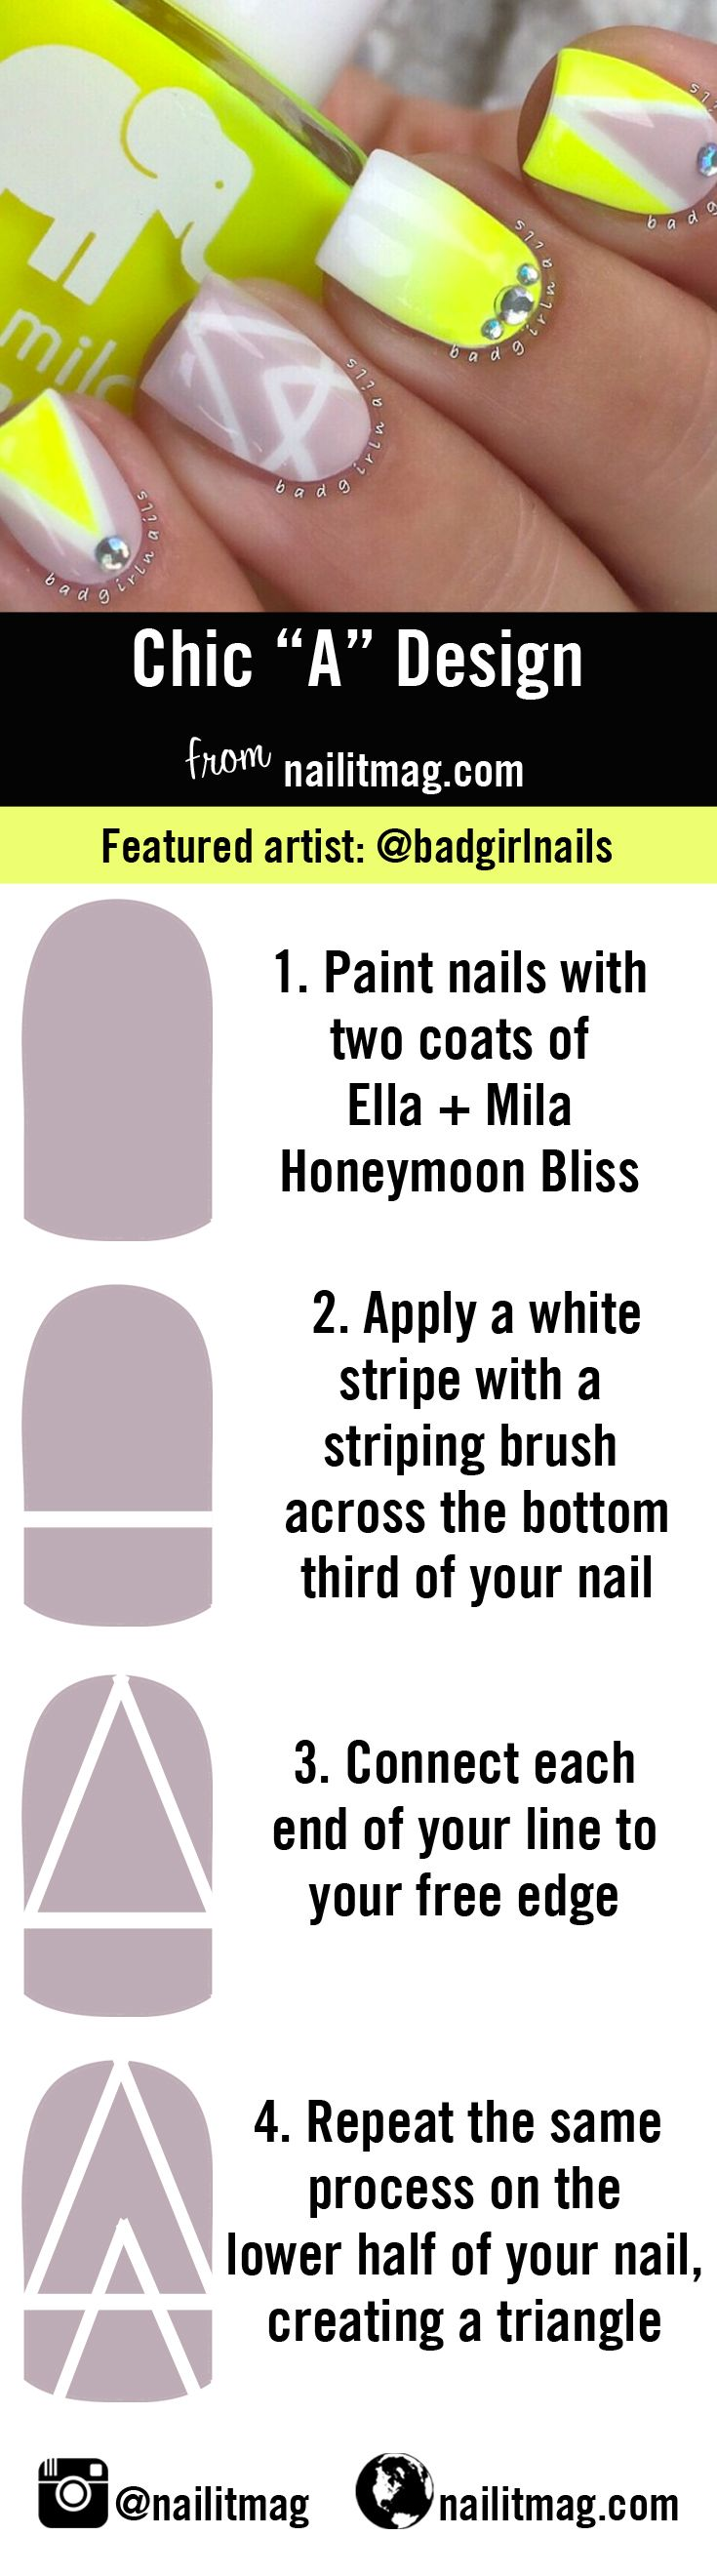 5 easy nail designs made of just straight lines  @badgirlnails